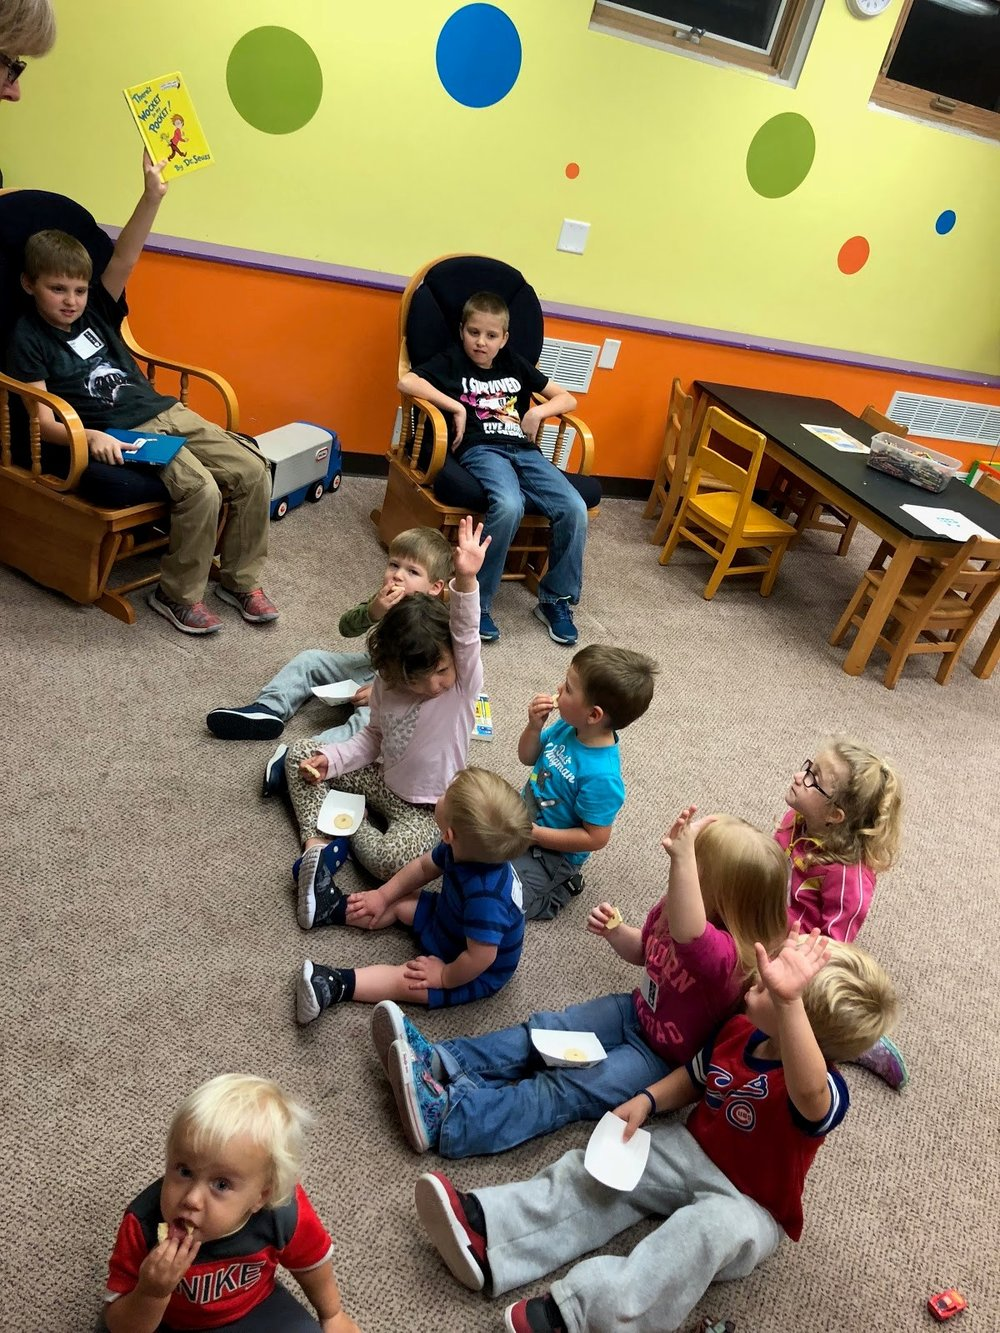 We love reading in the nursery! If you would like to read to the kiddos on a Sunday morning or Wednesday evening, give Alisa a call at 563.391.5488.